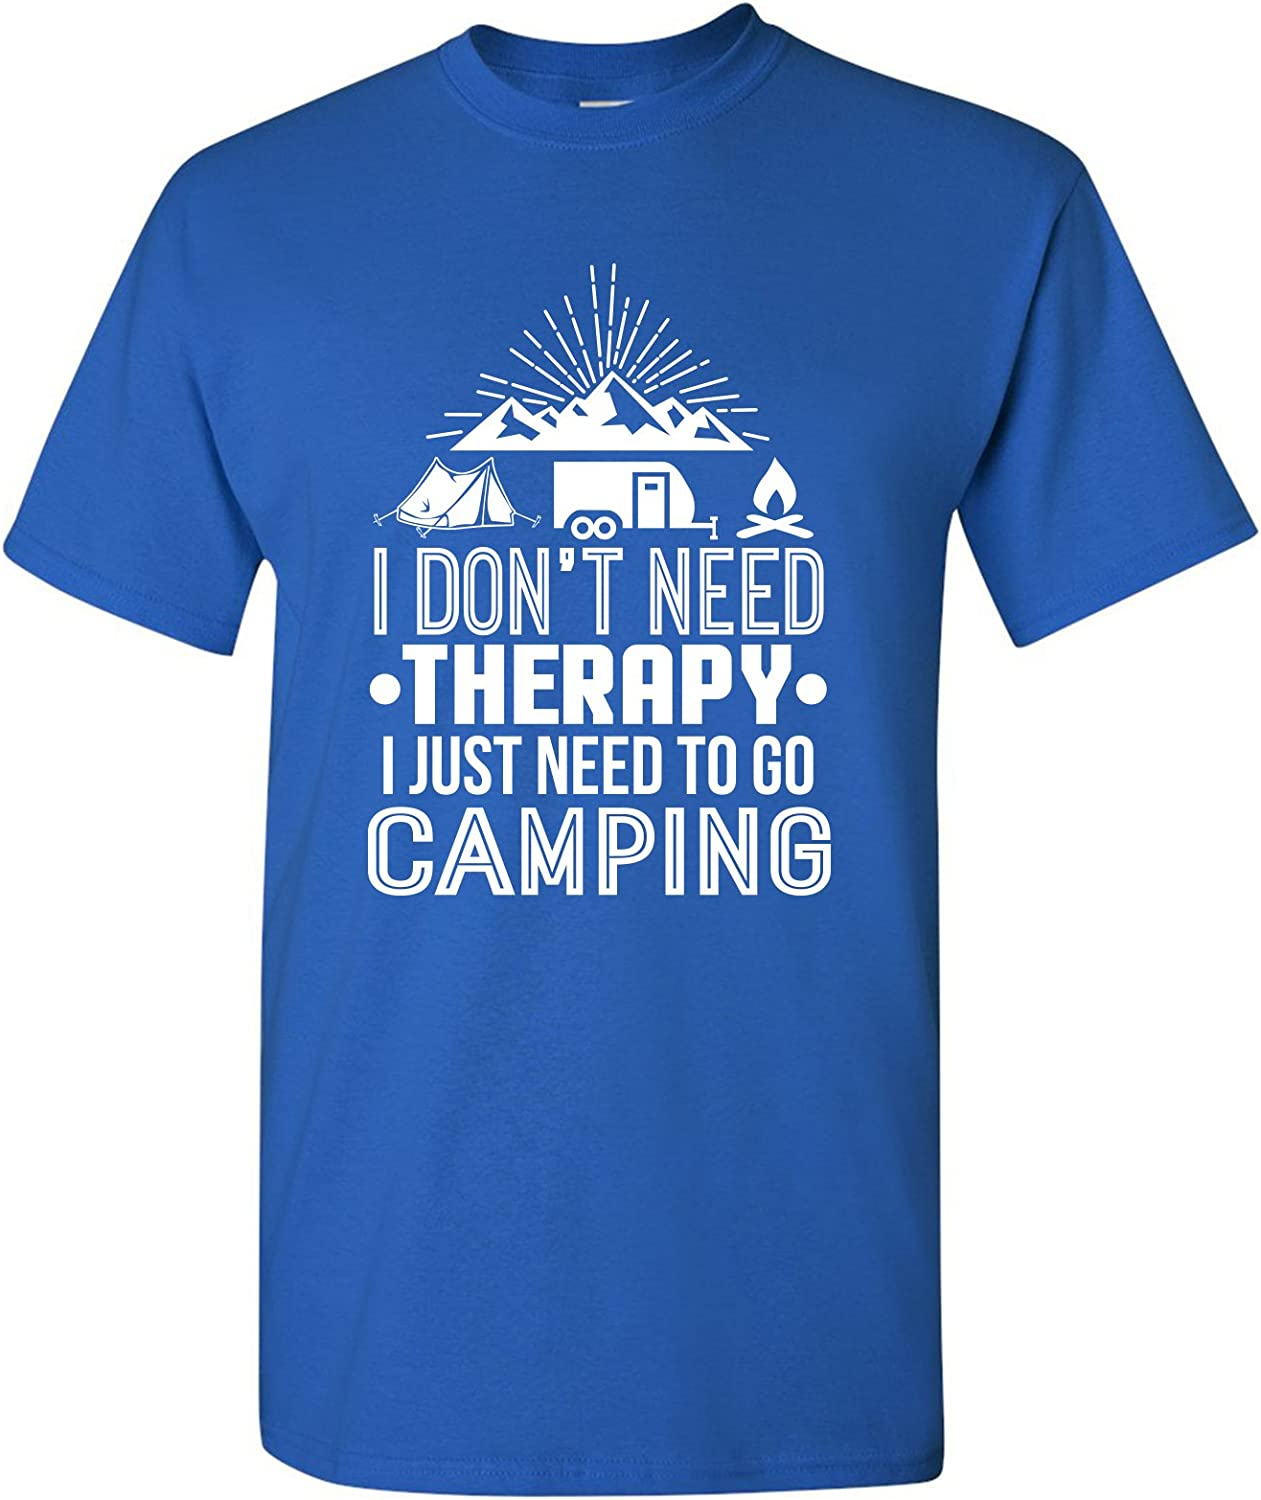 Don't Need Therapy I Just Need to Go Camping - Adult Camping Cotton T Shirt